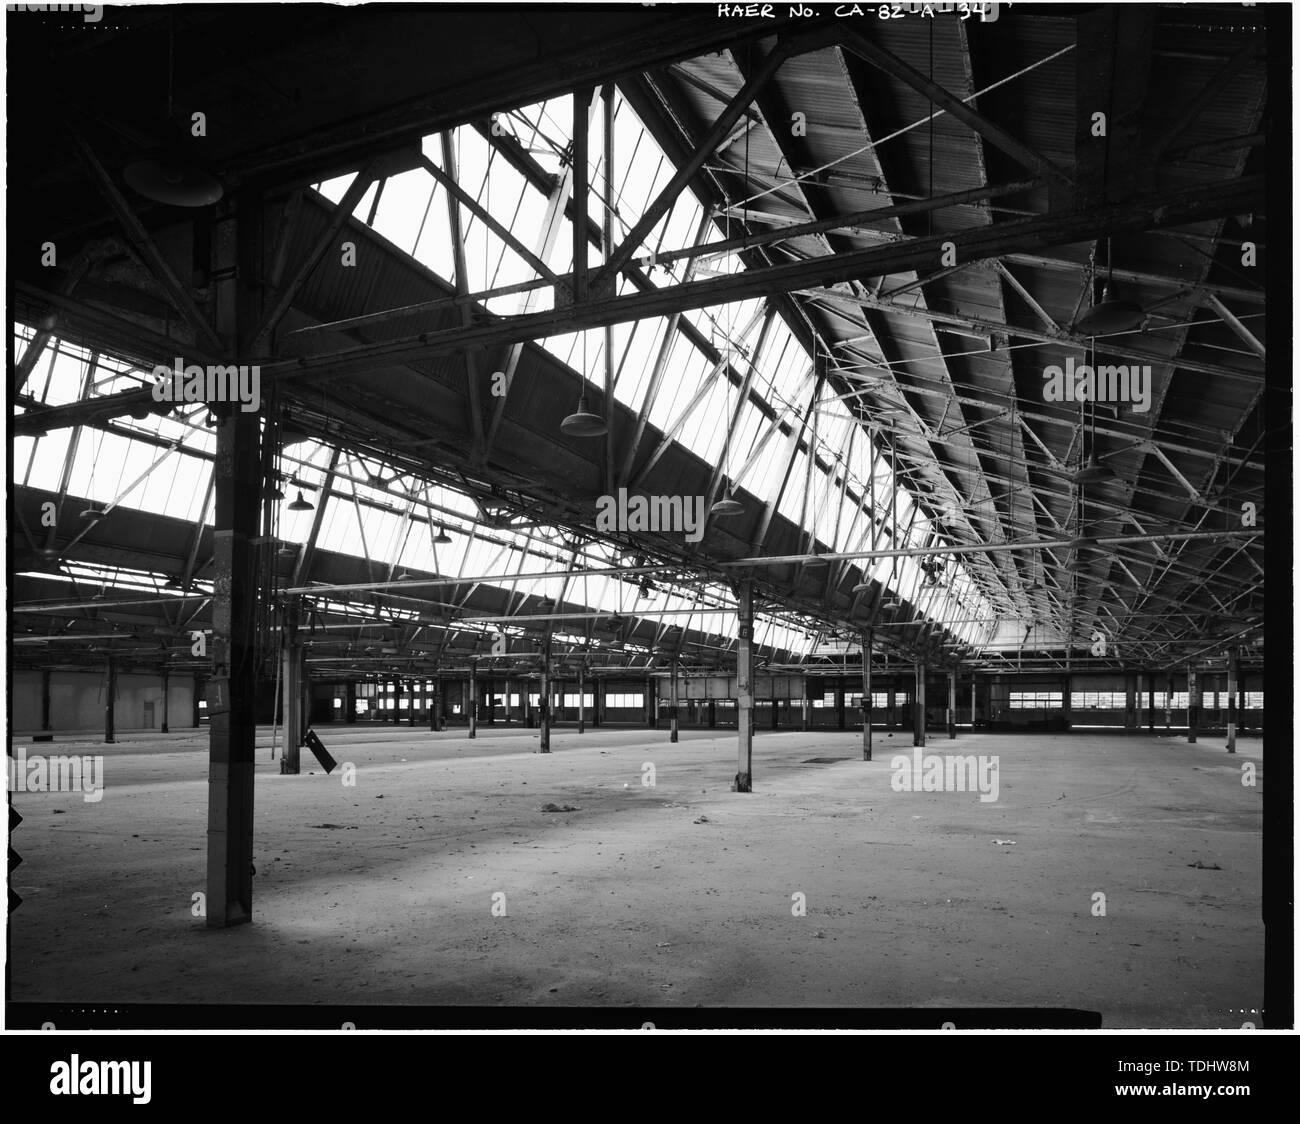 Übersicht nach Ost-NORDÖSTLICH DER MONTAGE. - Ford Motor Company Long Beach Montagewerk, Assembly Building, 700 Henry Ford Avenue, Long Beach, Los Angeles County, CA Stockbild